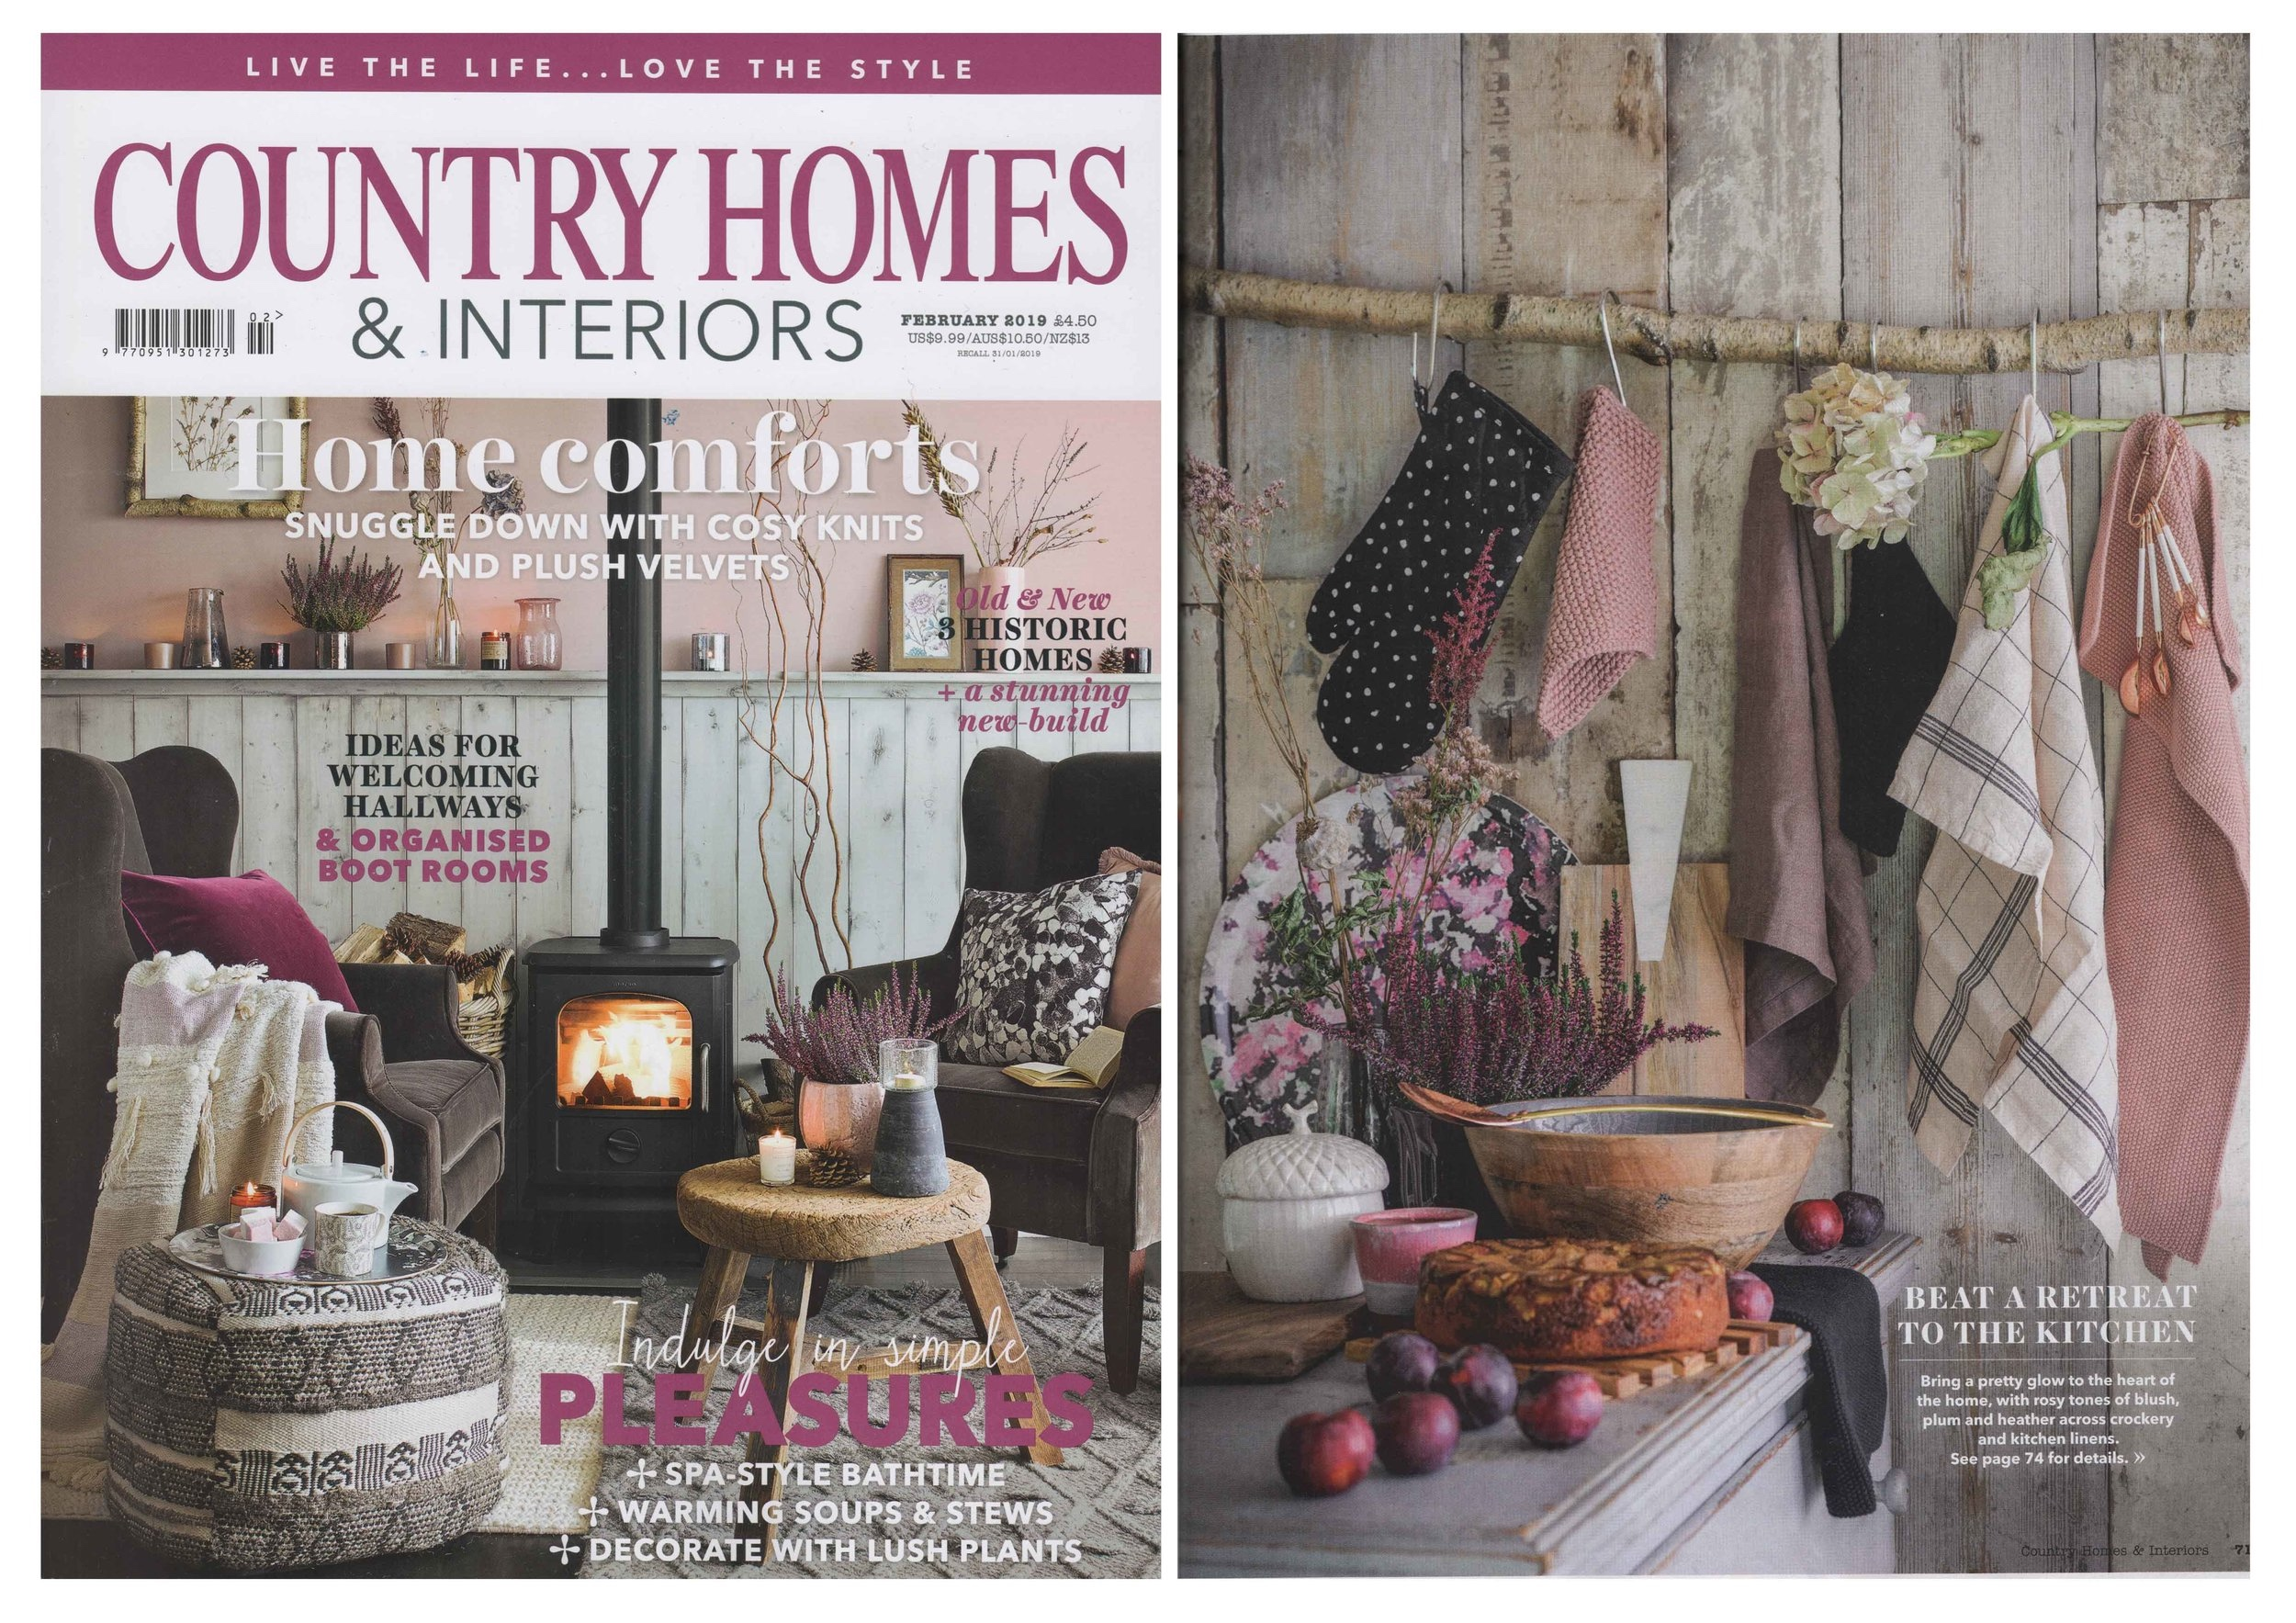 Country Homes February 2019